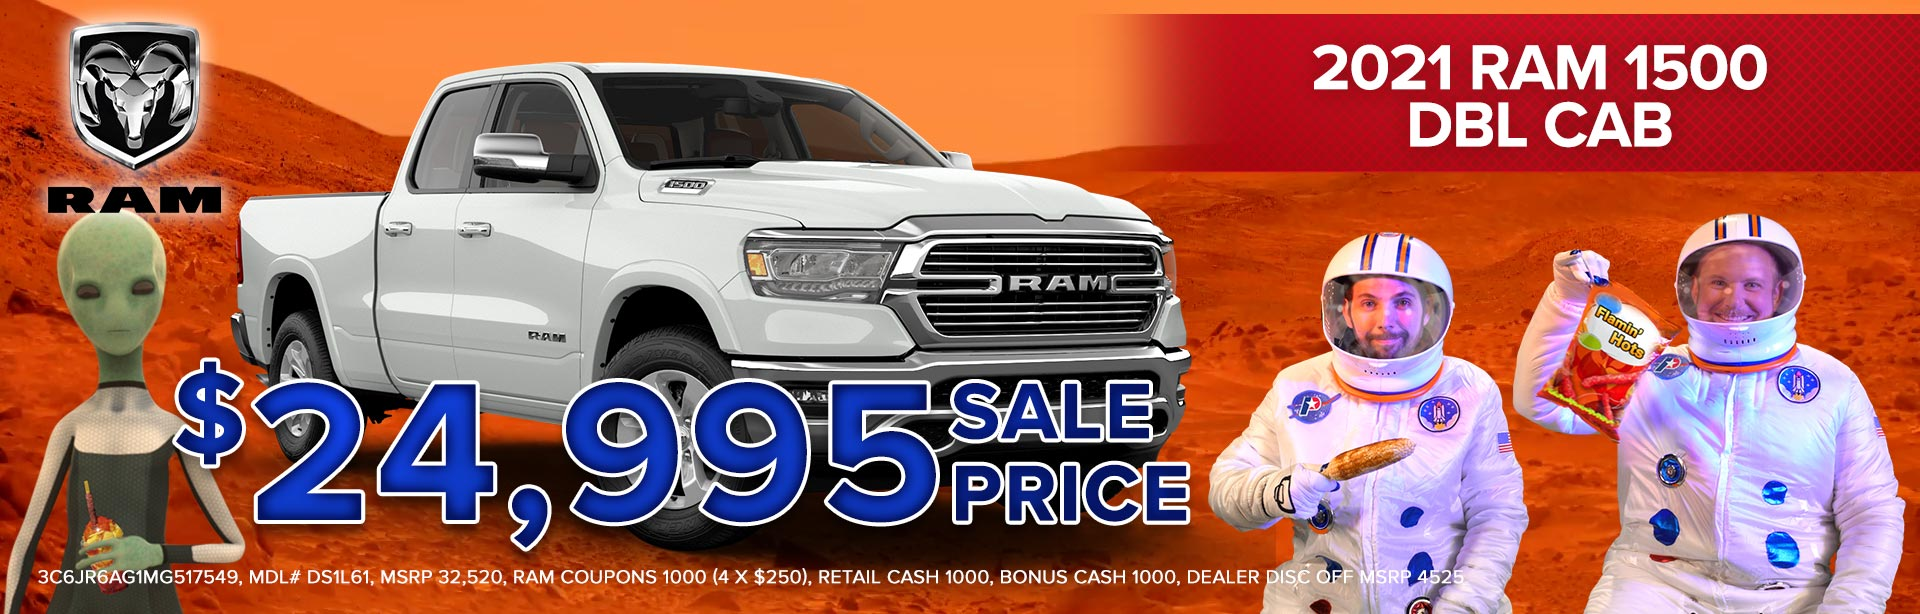 Get a 2021 RAM 1500 DBL Cab for $24,995!